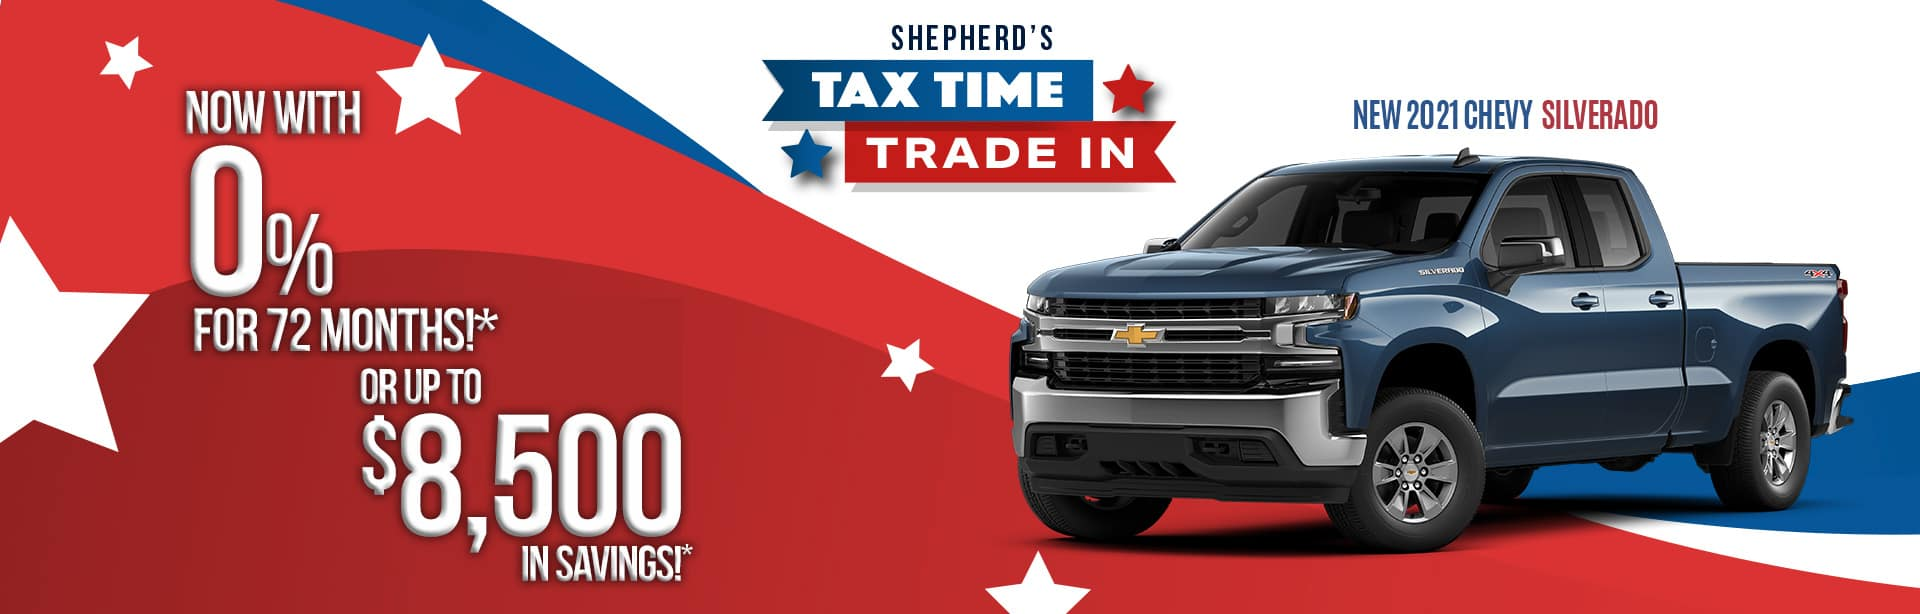 Biggest savings on a new 2021 Chevy Silverado 1500 near North Manchester IN